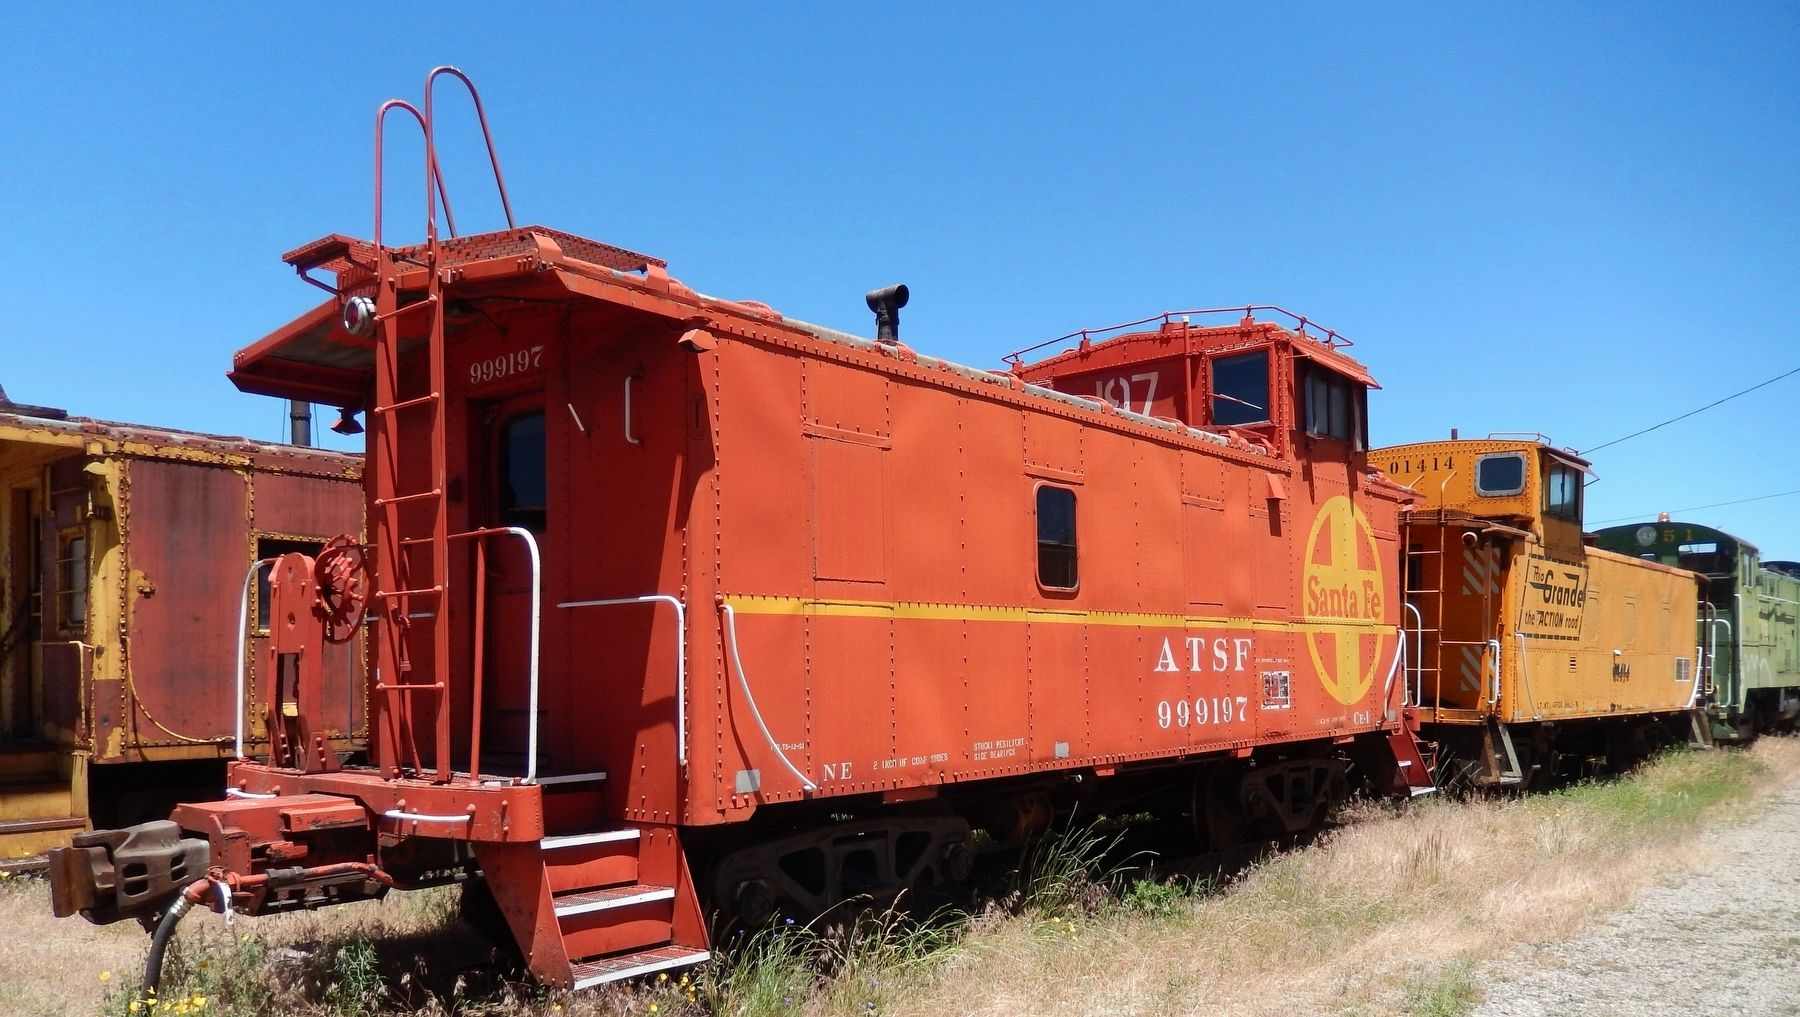 Atchison, Topeka & Santa Fe Caboose #999197 image. Click for full size.